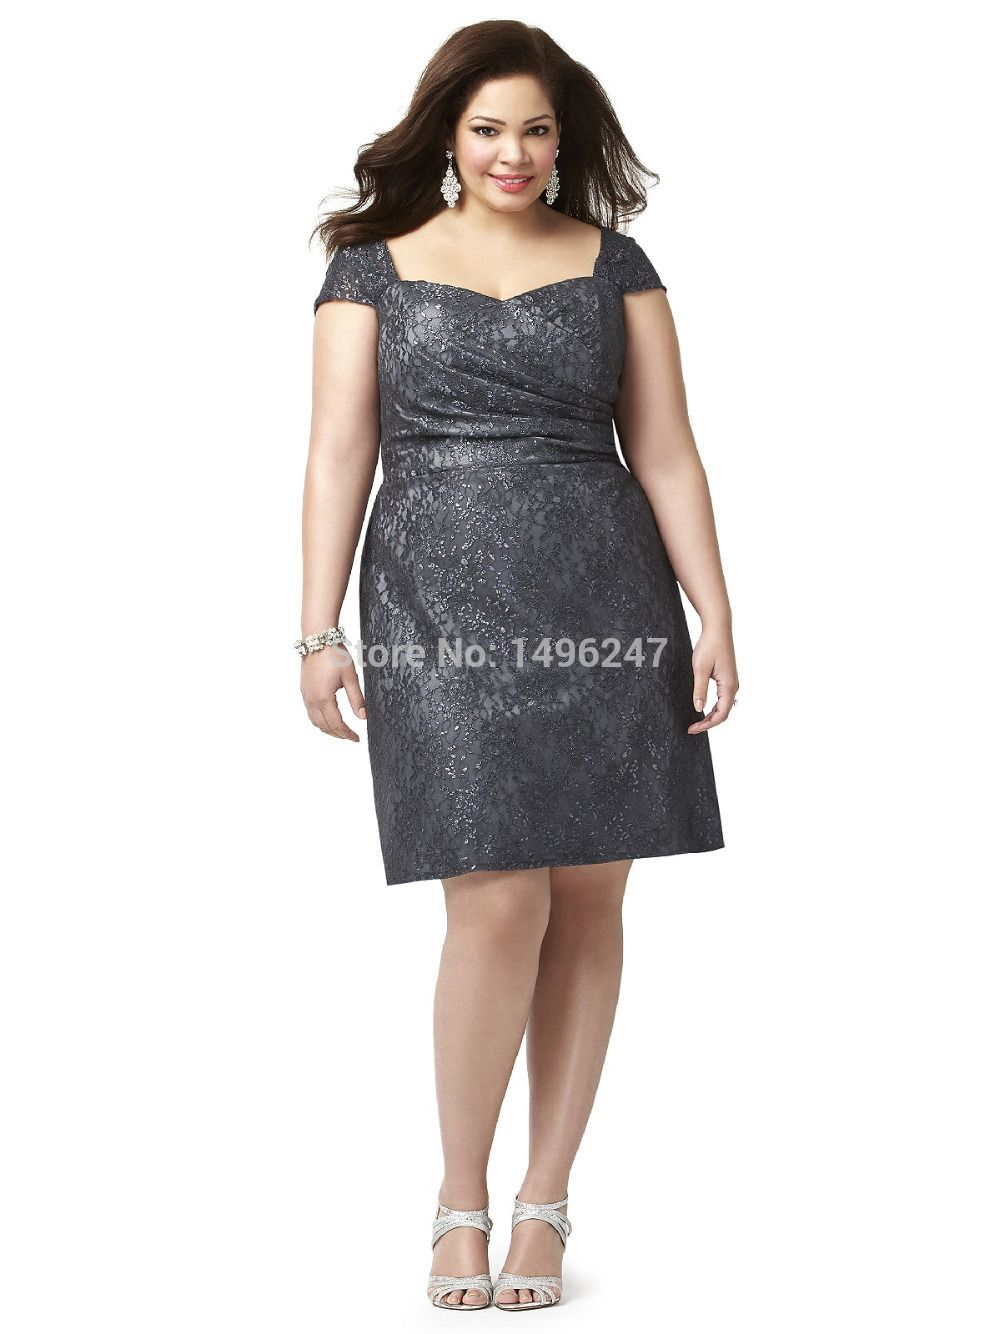 Click to buy hot plus size lace short bridesmaid dresses fast click to buy hot plus size lace short bridesmaid dresses fast shipping ombrellifo Images